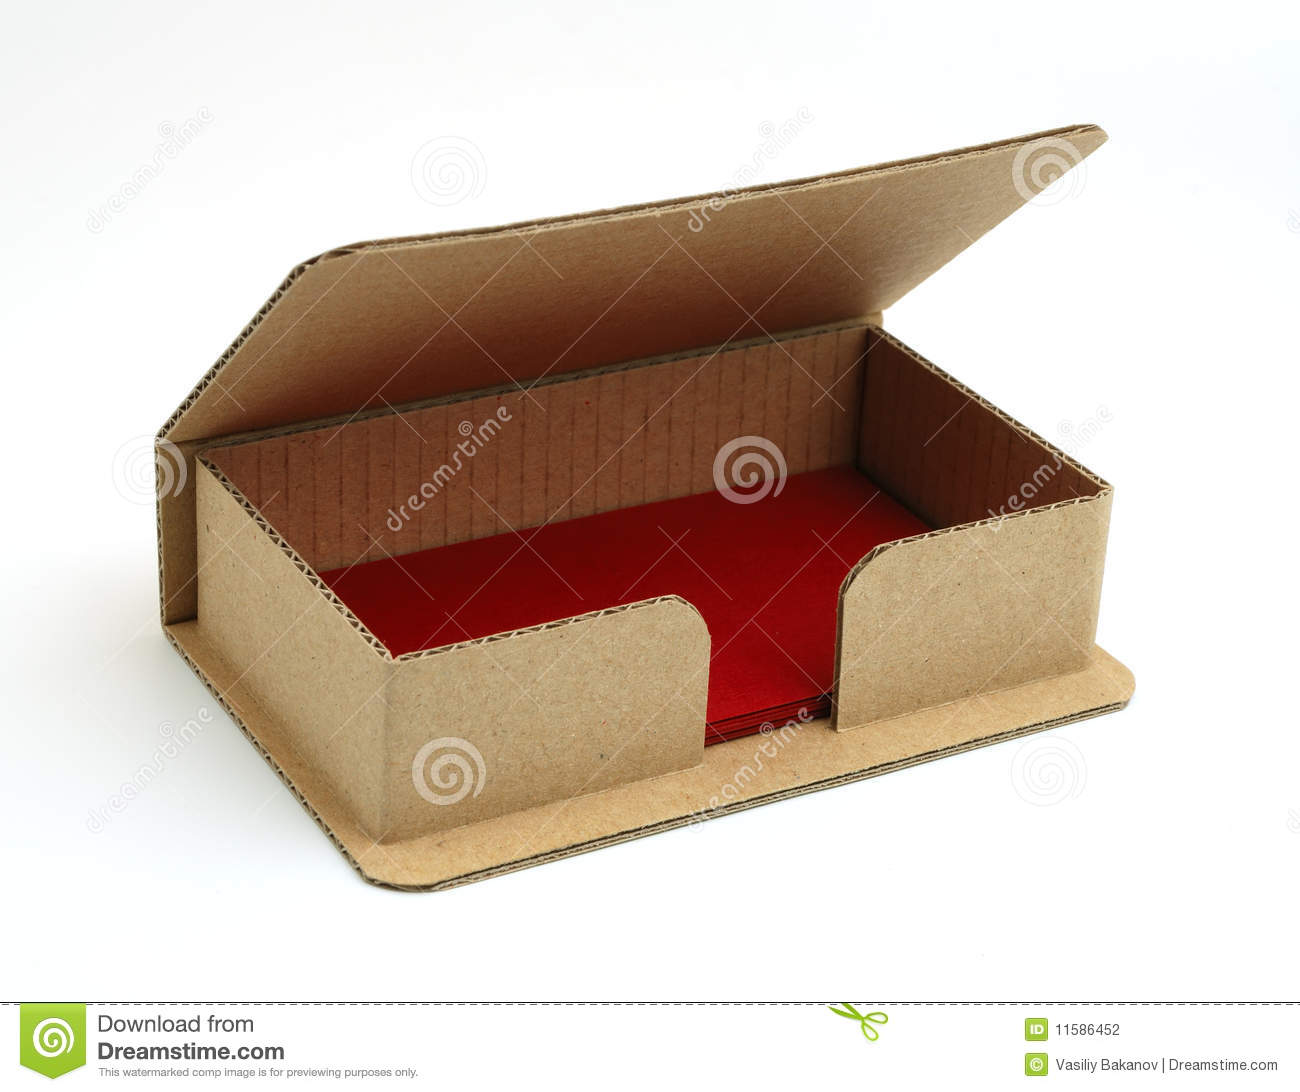 Box for business cards. stock photo. Image of white, paper - 11586452